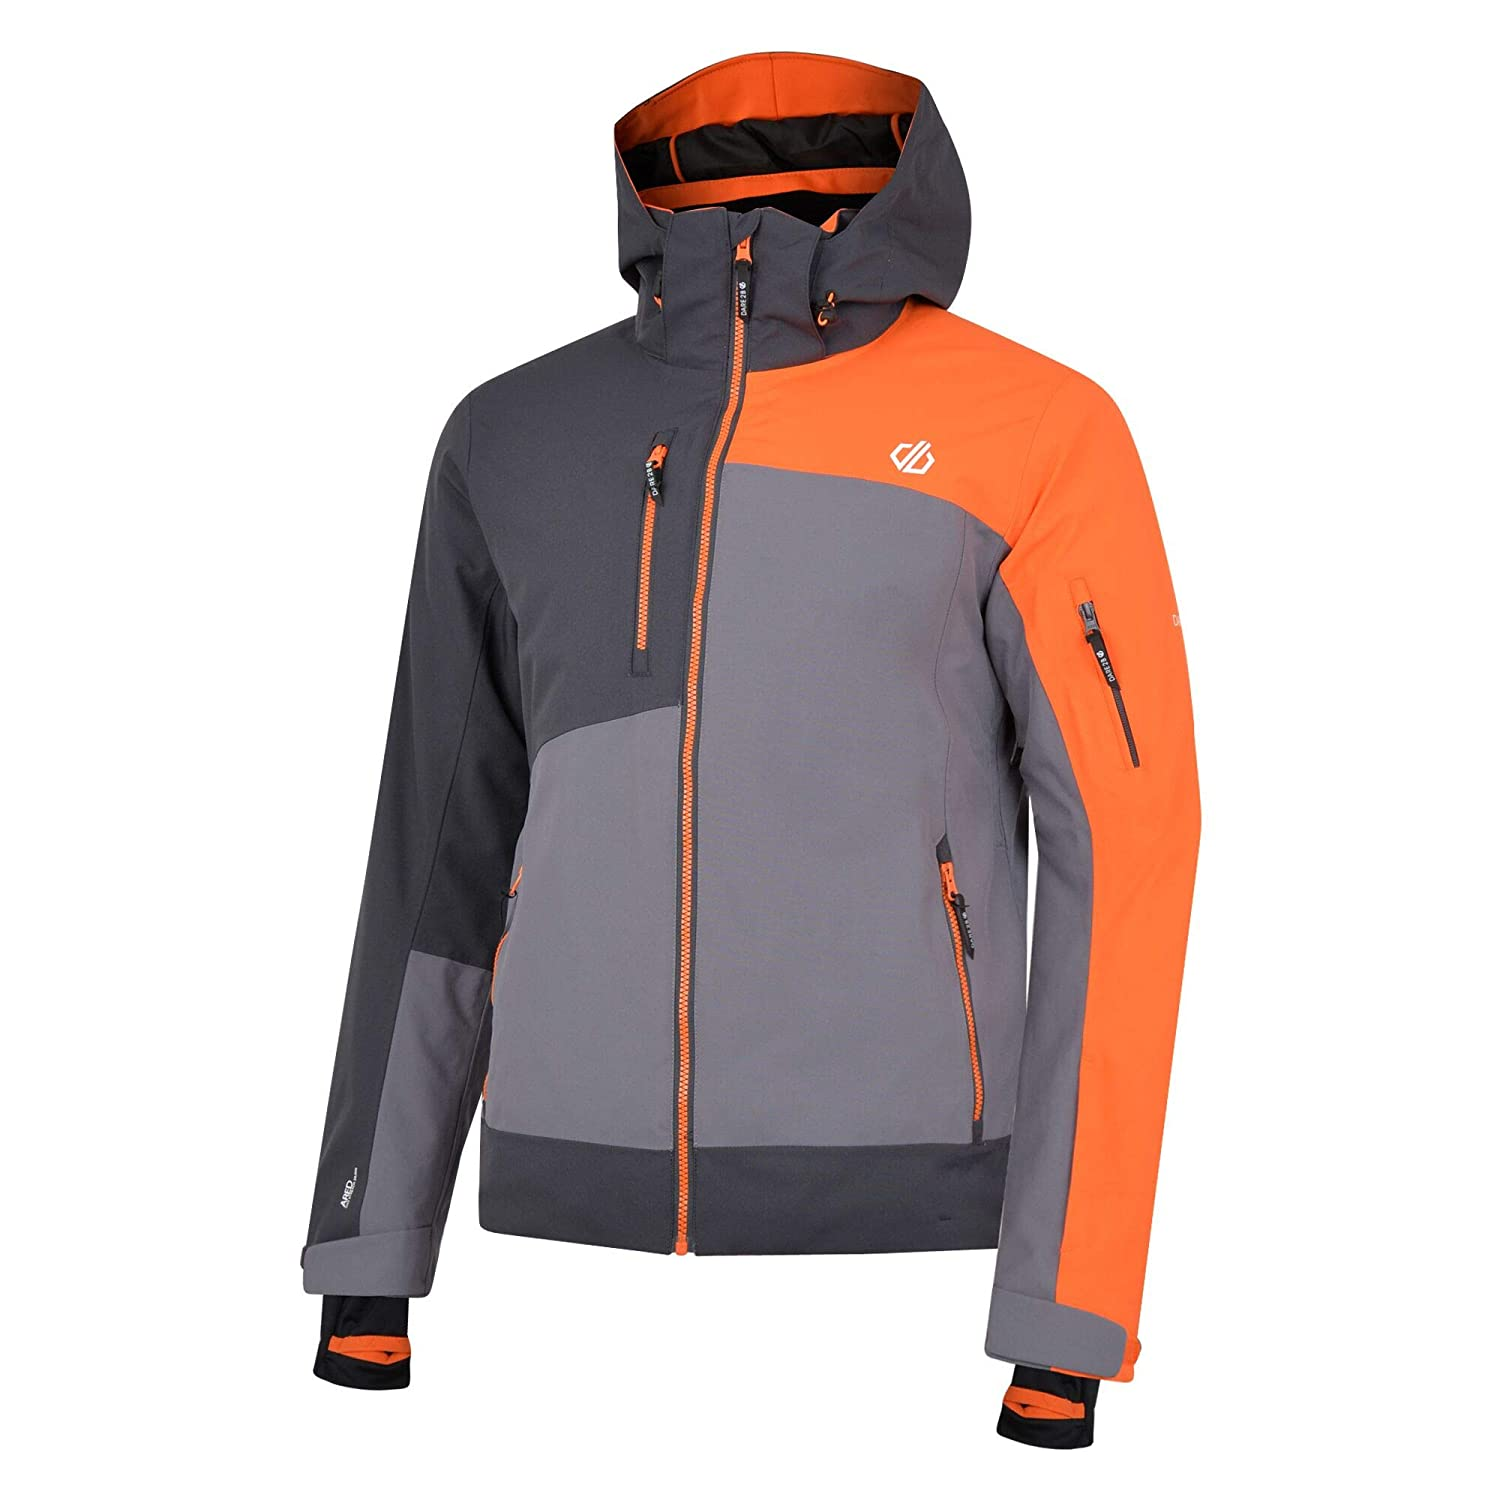 Hombre Dare 2b Travail Pro Waterproof /& Breathable High Loft Insulated Ski /& Snowboard Jacket with Detachable Hood and Snowskirt Chaquetas aislantes Impermeables